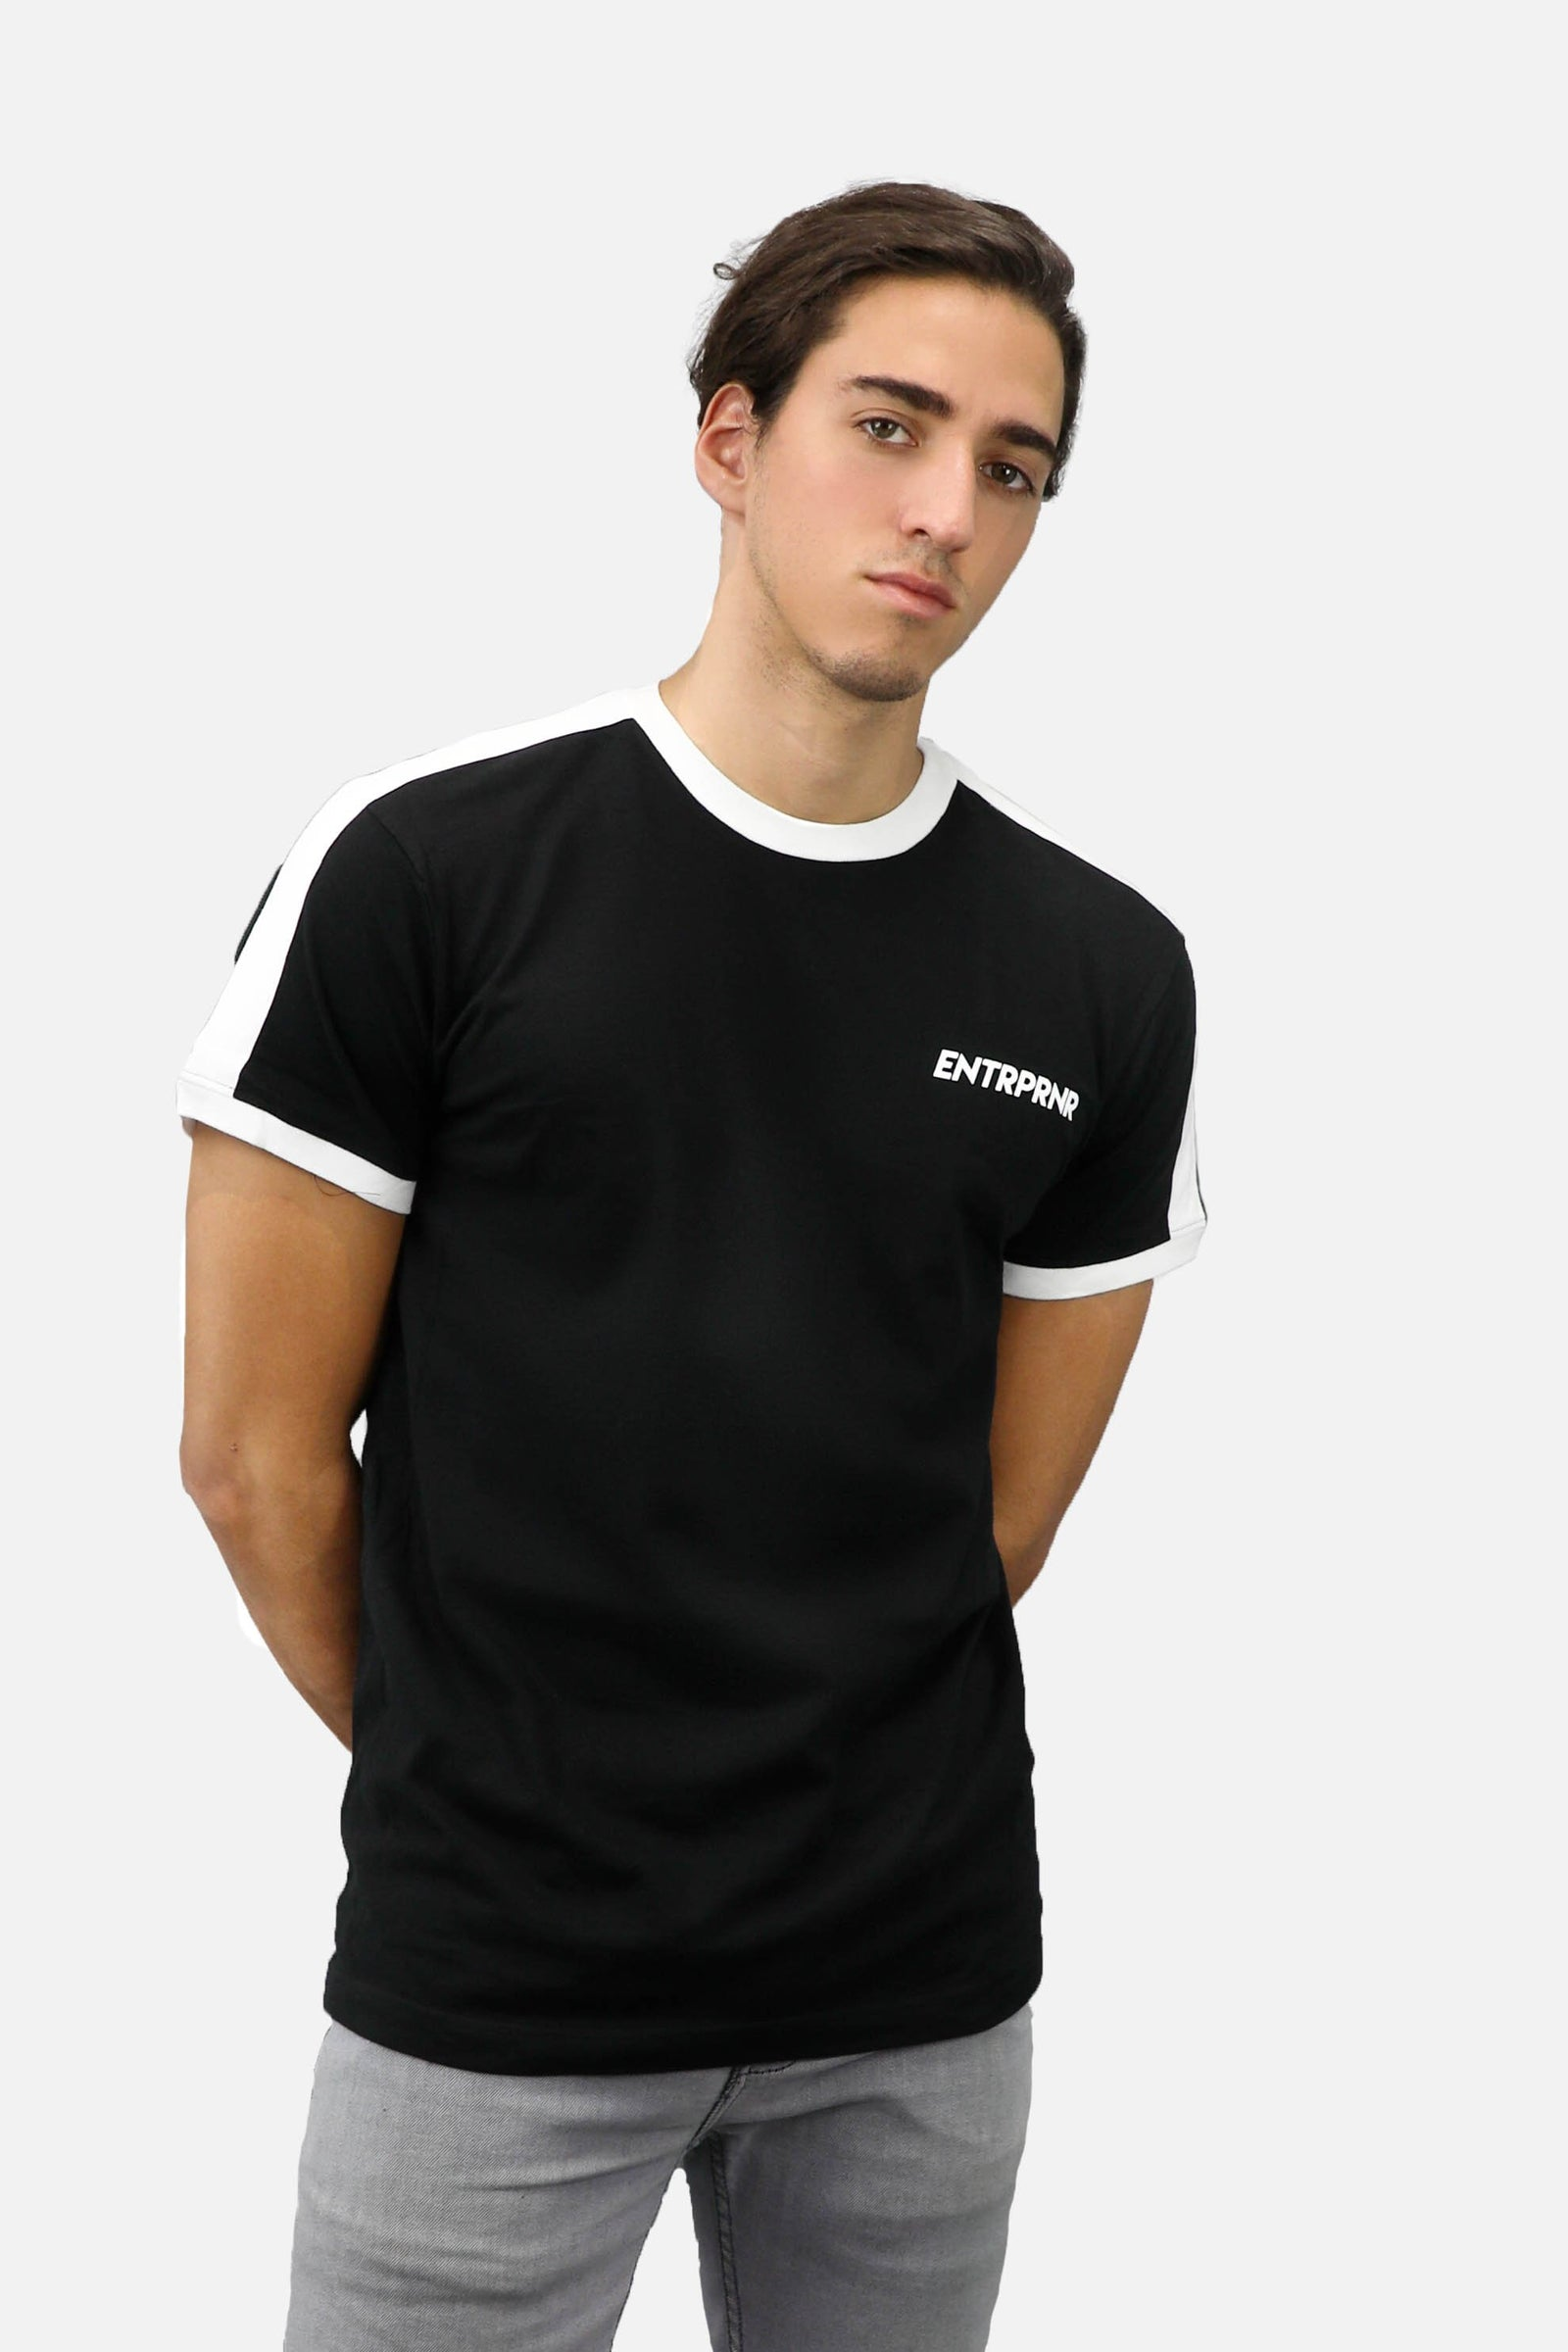 Athletic Ringer ENTRPRNR Tee – Black - ENTRPRNR® | The Entrepreneur's Clothing Brand. | Stagnancy is the Enemy. Action is King.